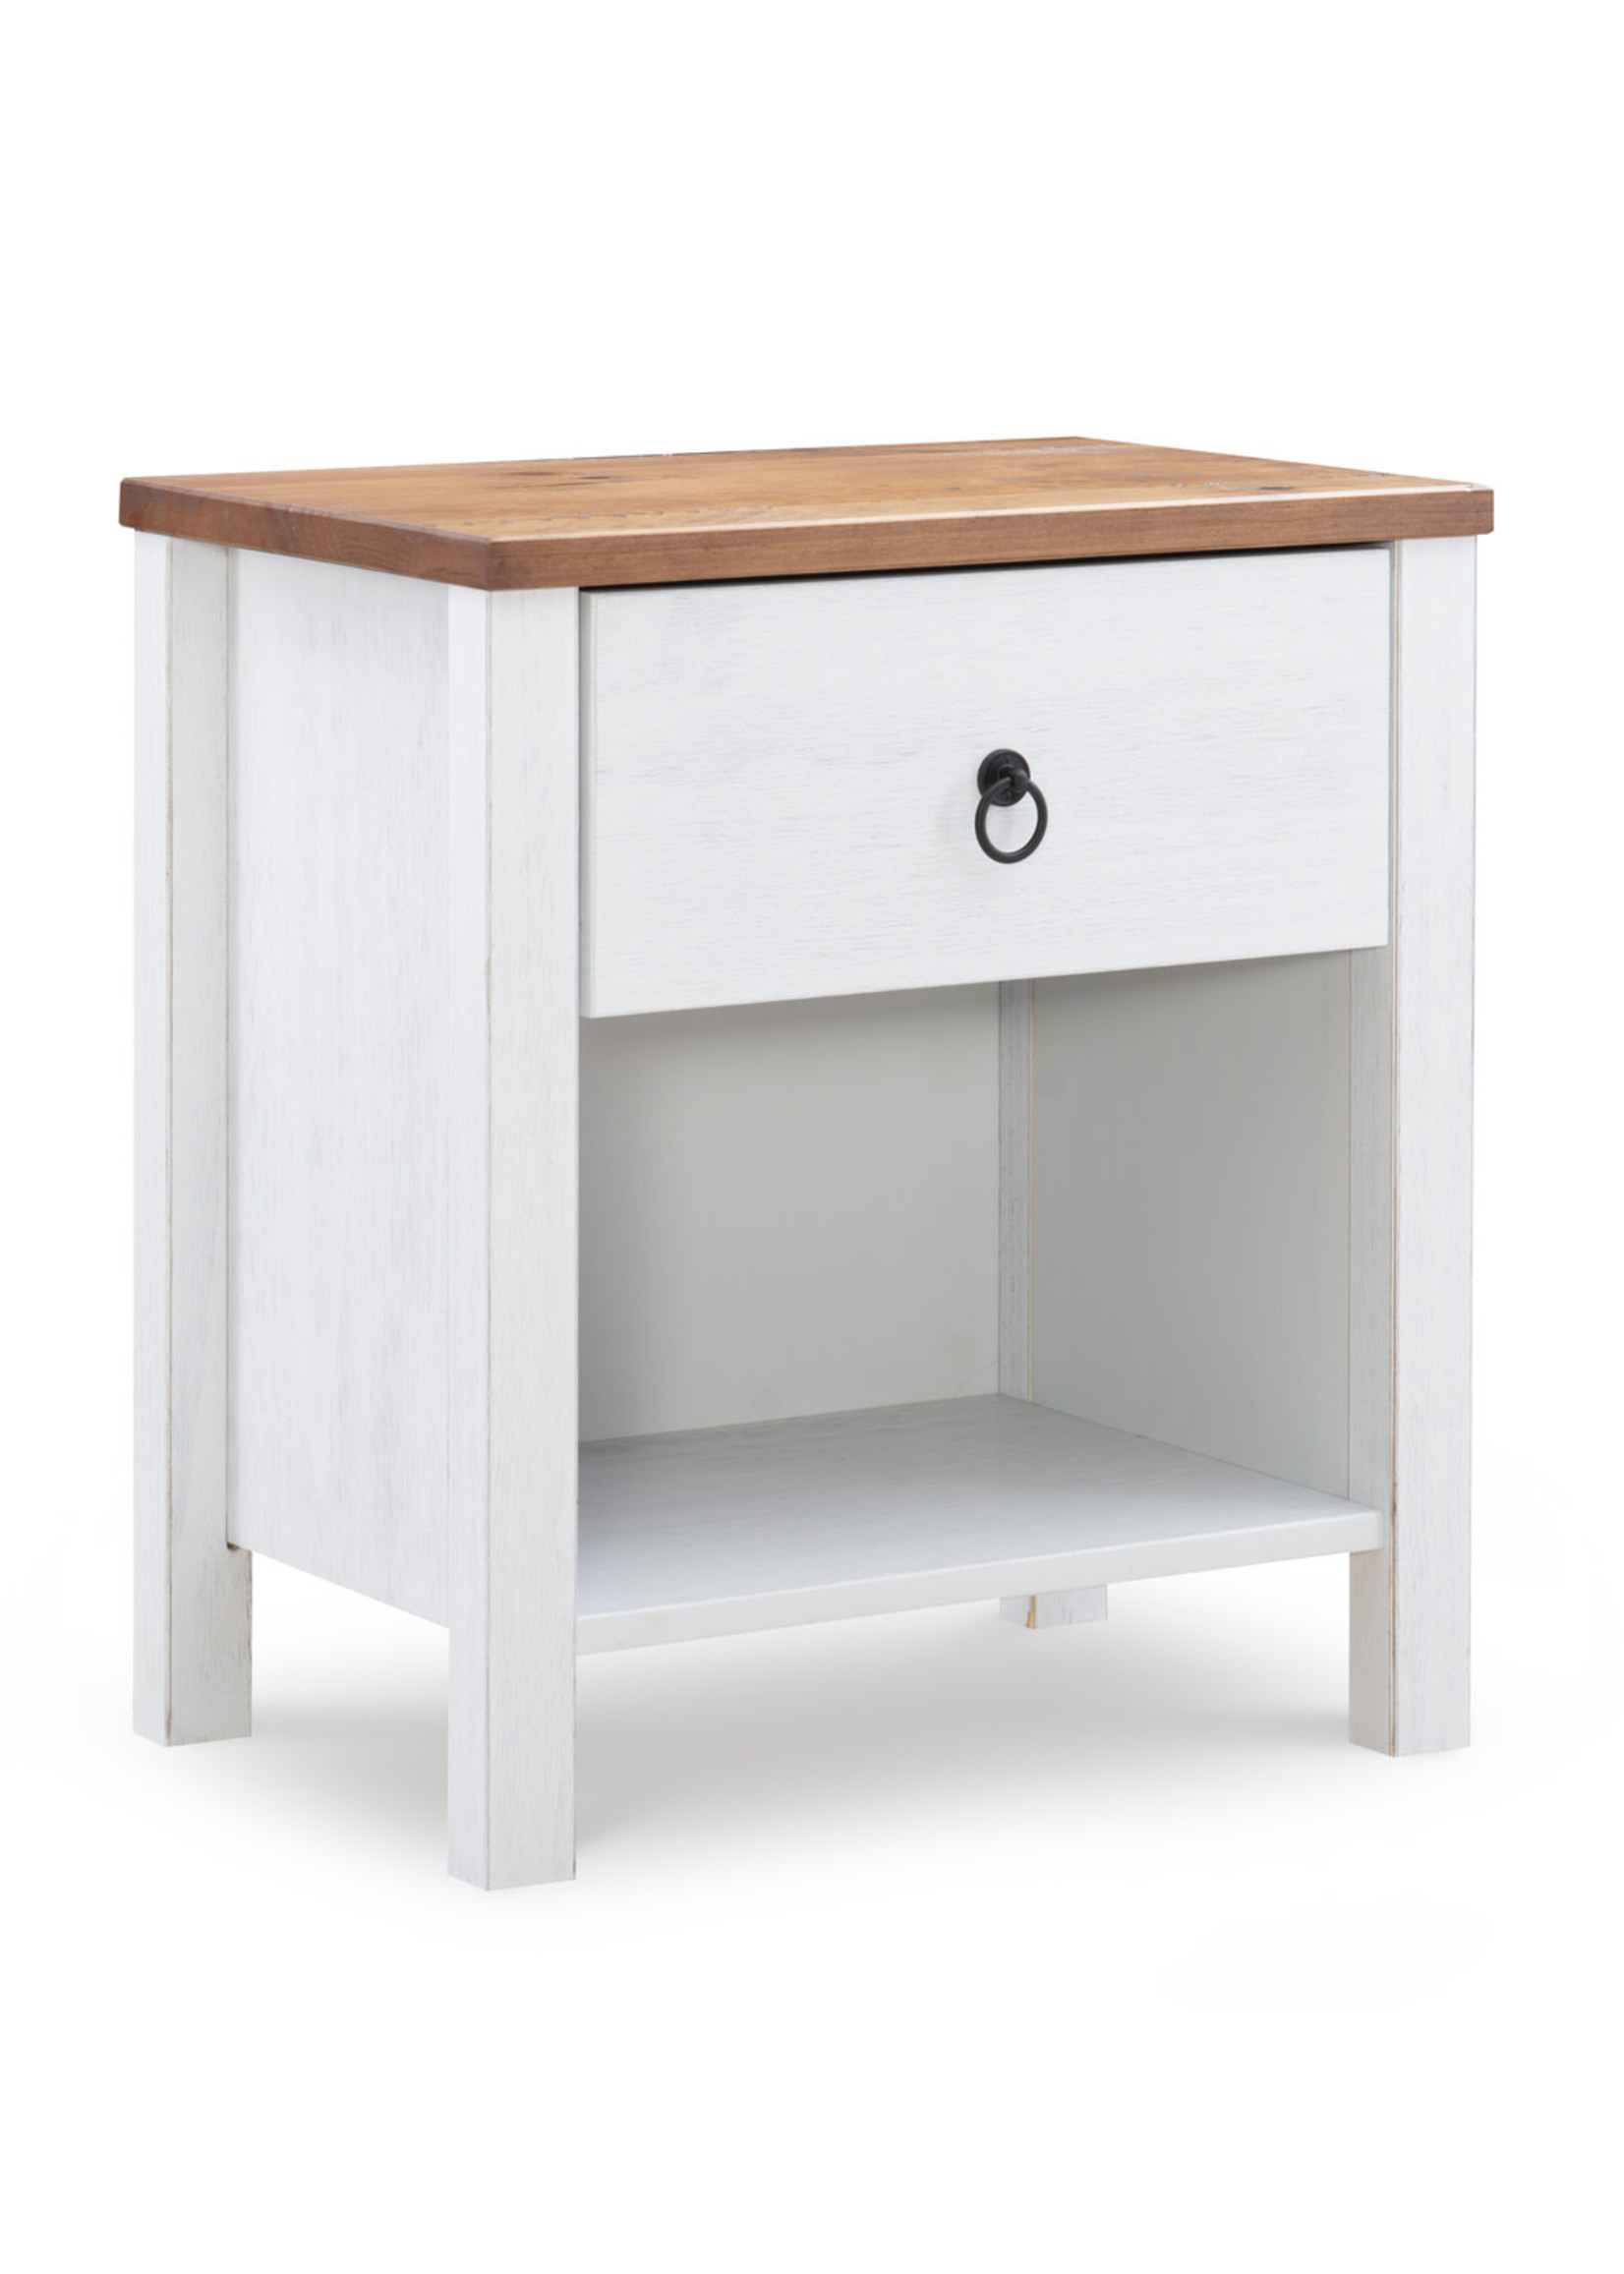 LINON 19Y2020NS NIGHTSTAND RUSTIC TWO TONE